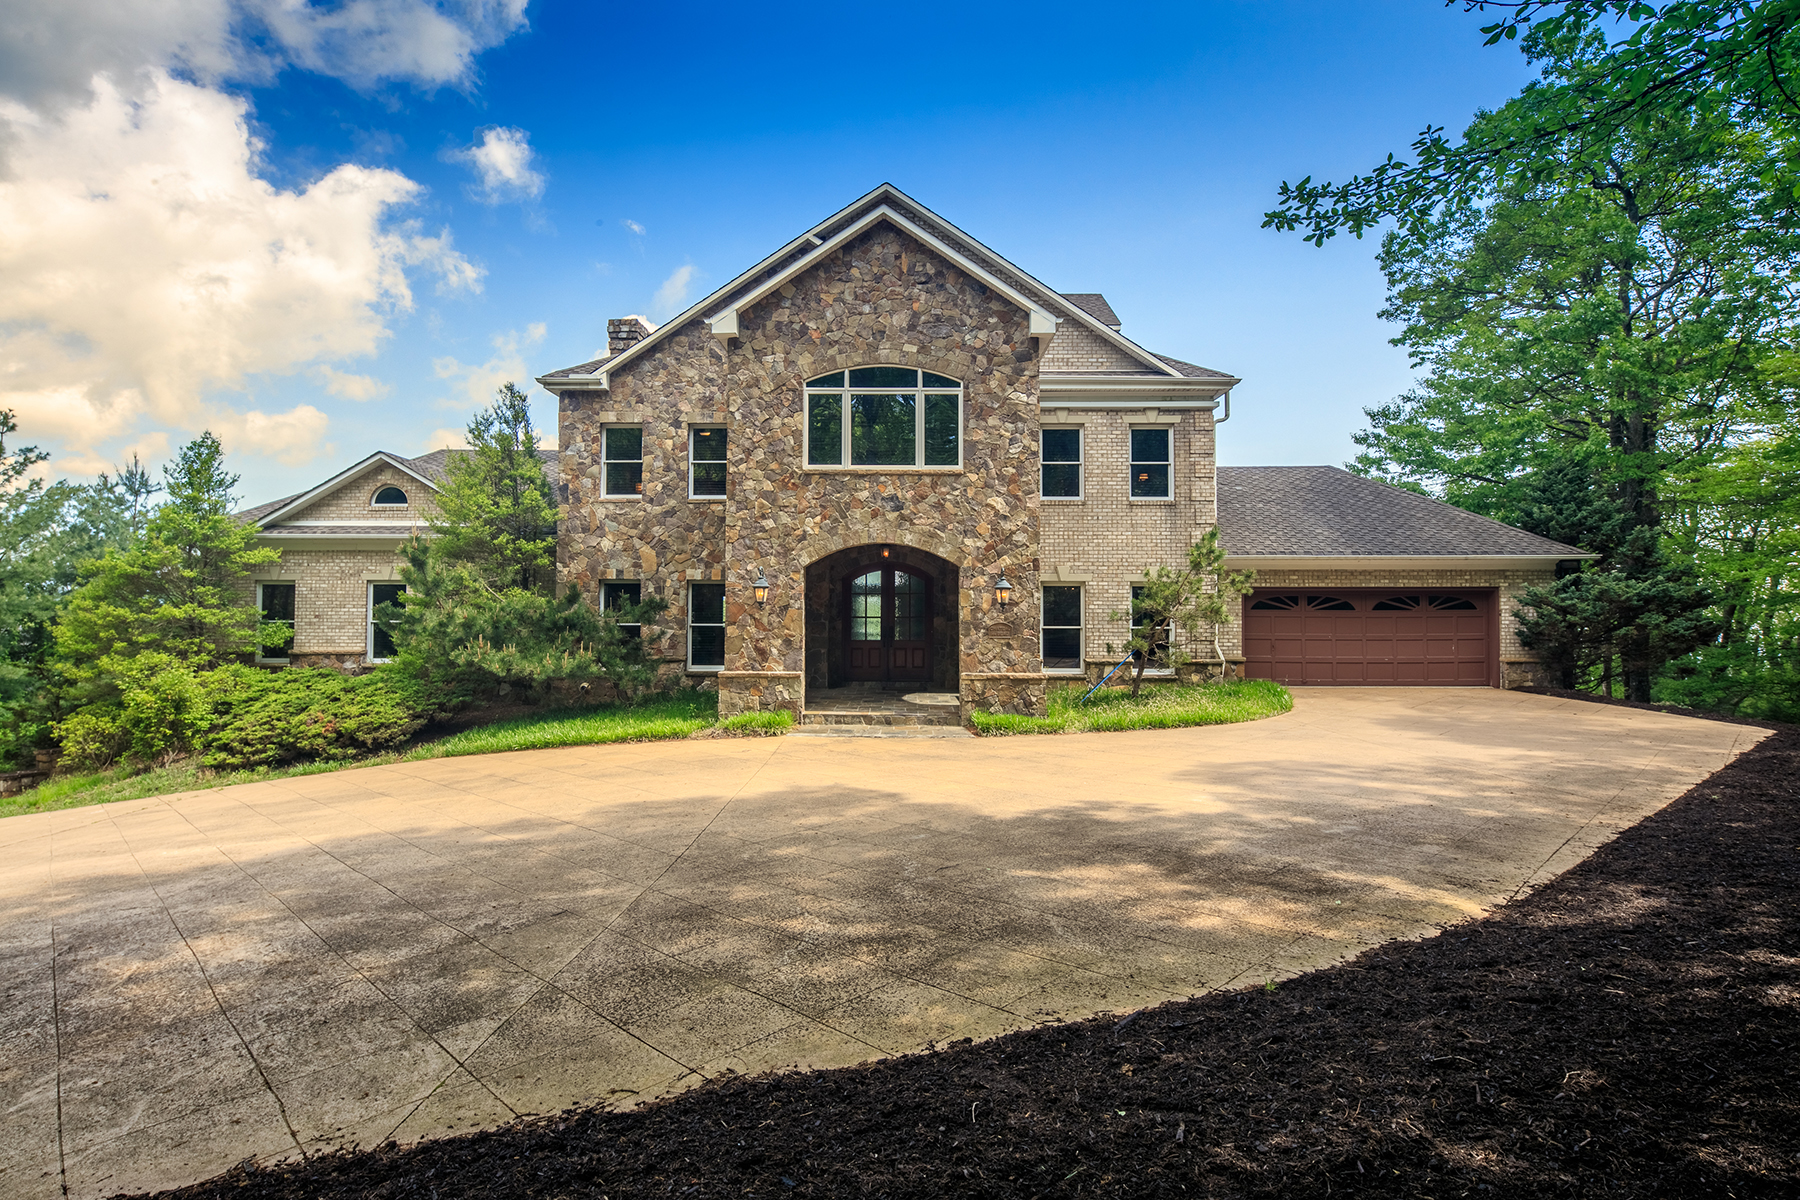 Single Family Homes for Active at OLDE BEAU - GLADE VALLEY 588 Troon Dr Glade Valley, North Carolina 28668 United States